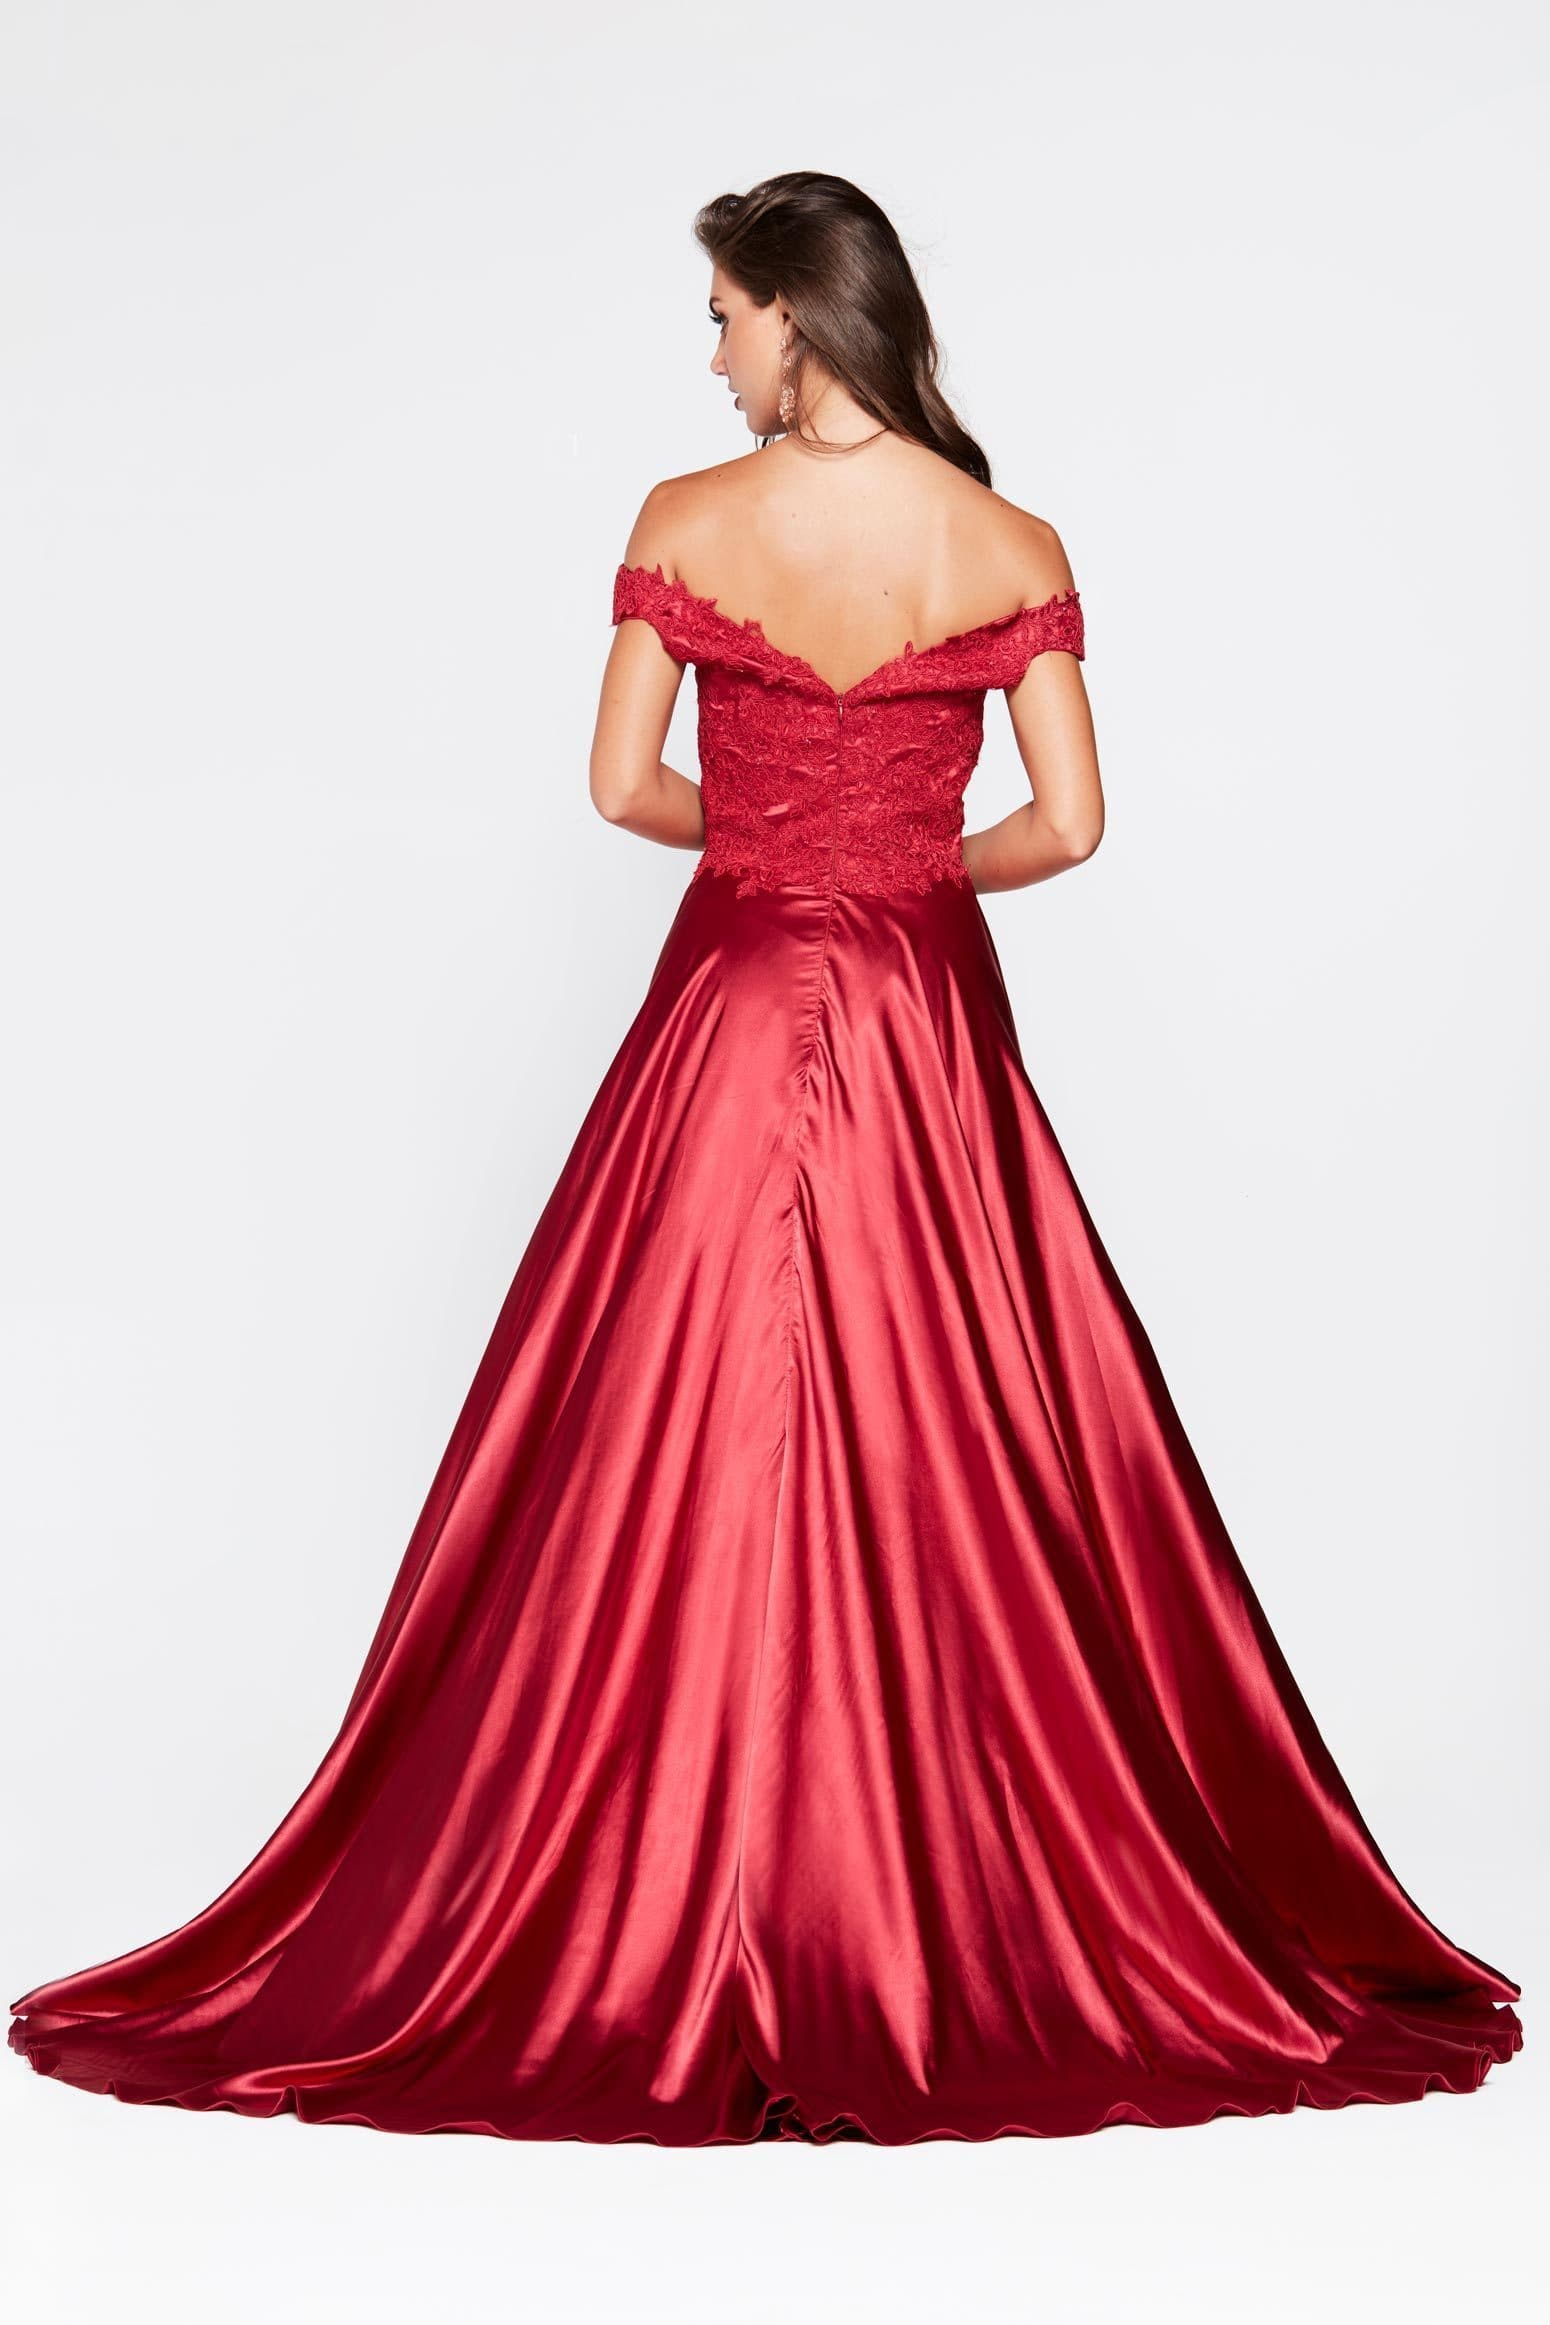 Freya Dress - Deep Red Off Shoulder Lace Satin Split Full Length Gown